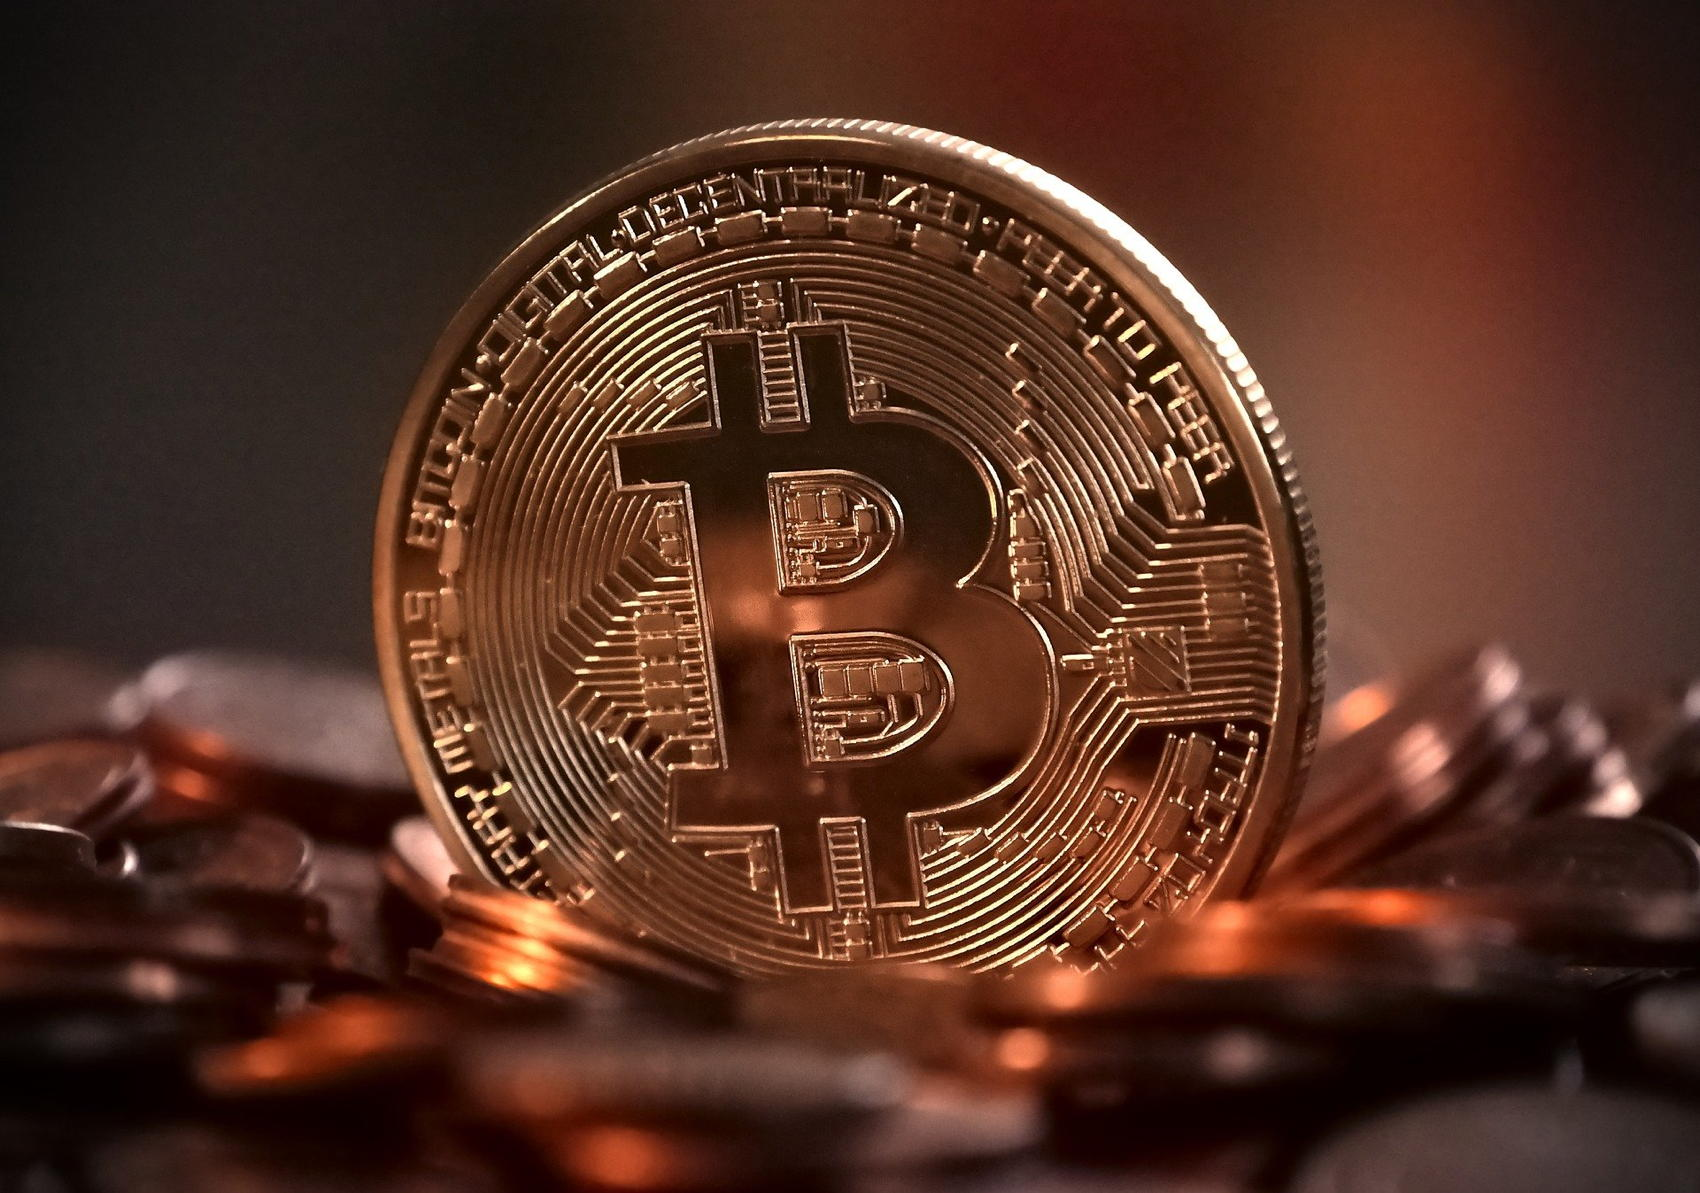 Bitcoin Cryptocurrency - Image by Michael Wuensch